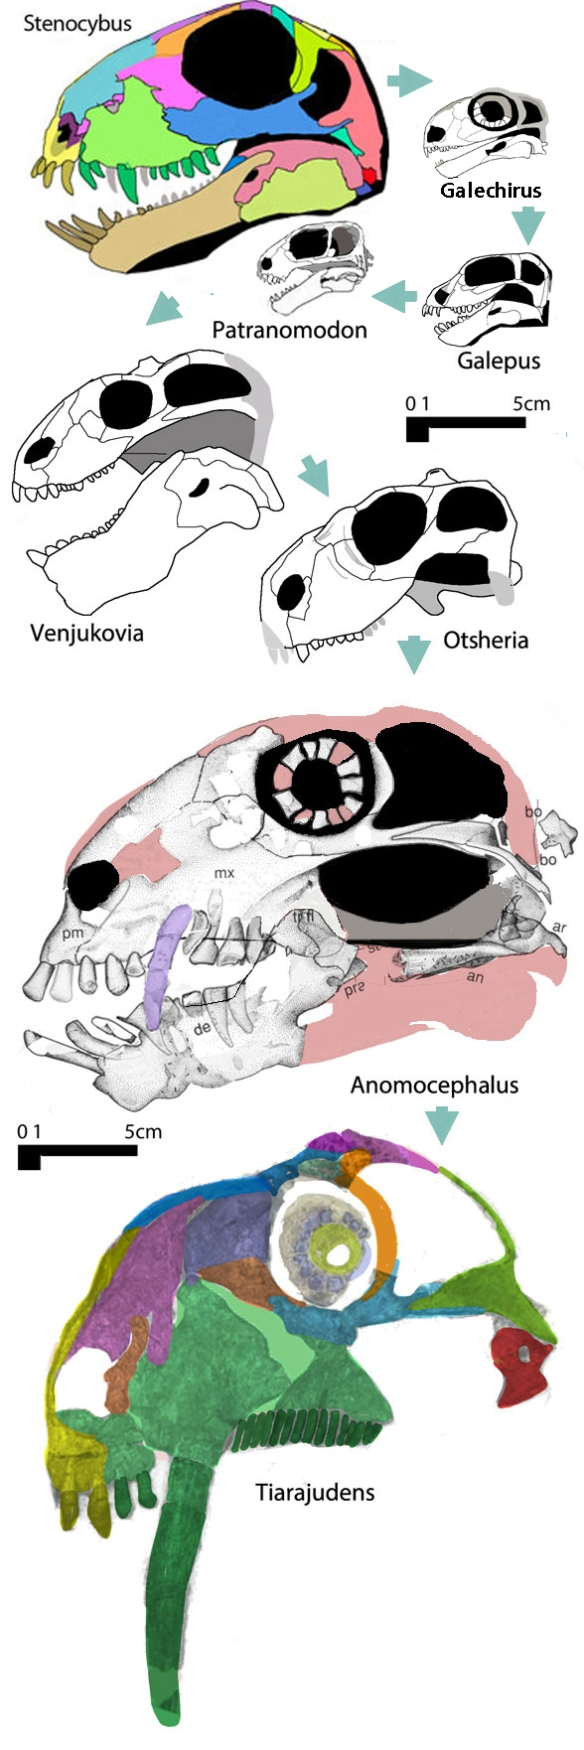 Figure 3. Venjukoviamorphs include the dicynodont mimics, Tiarajudens and Anomcephalus. now with long canines.